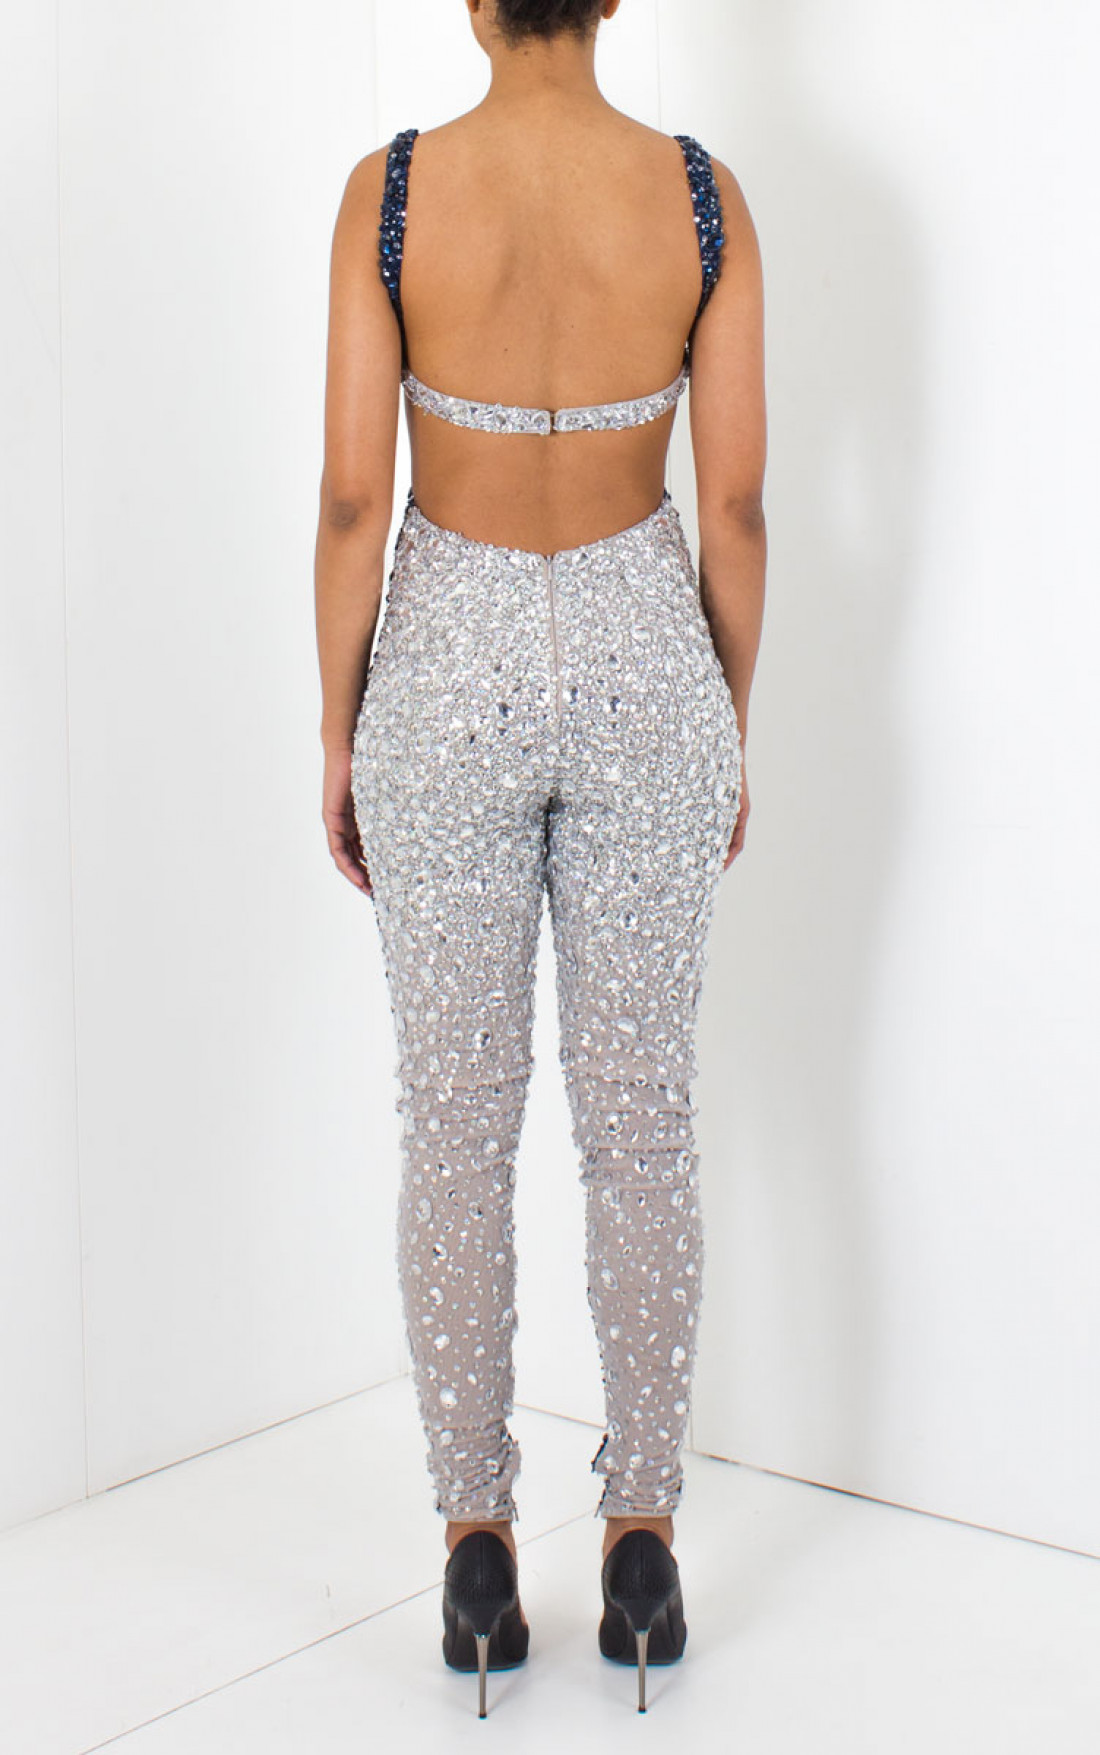 Jovani Dresses Womens Navy And Silver Sequin Jumpsuit